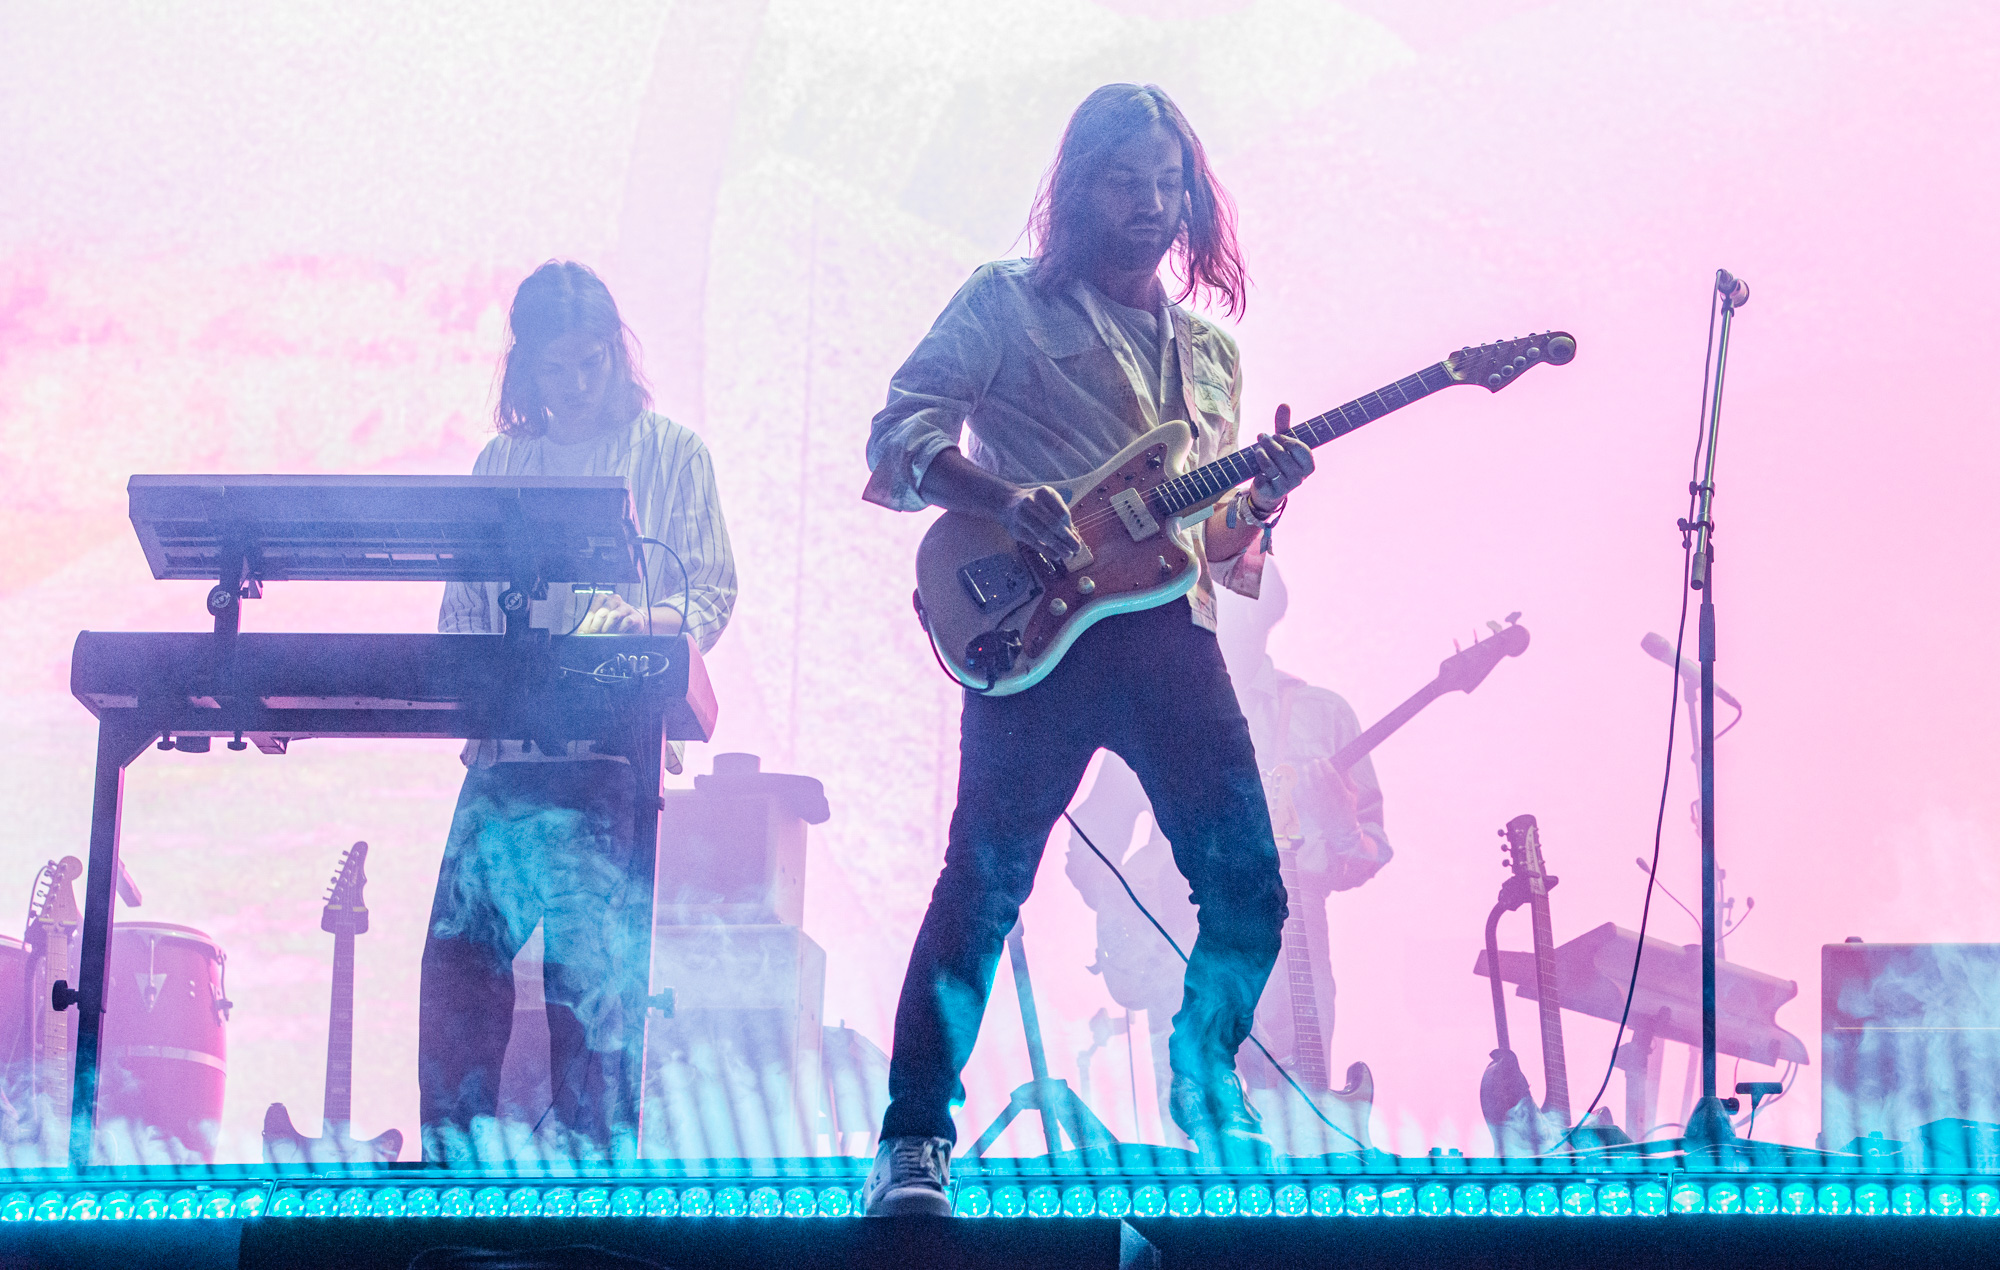 Ponle play al nuevo tema de Tame Impala: Lost In Yesterday